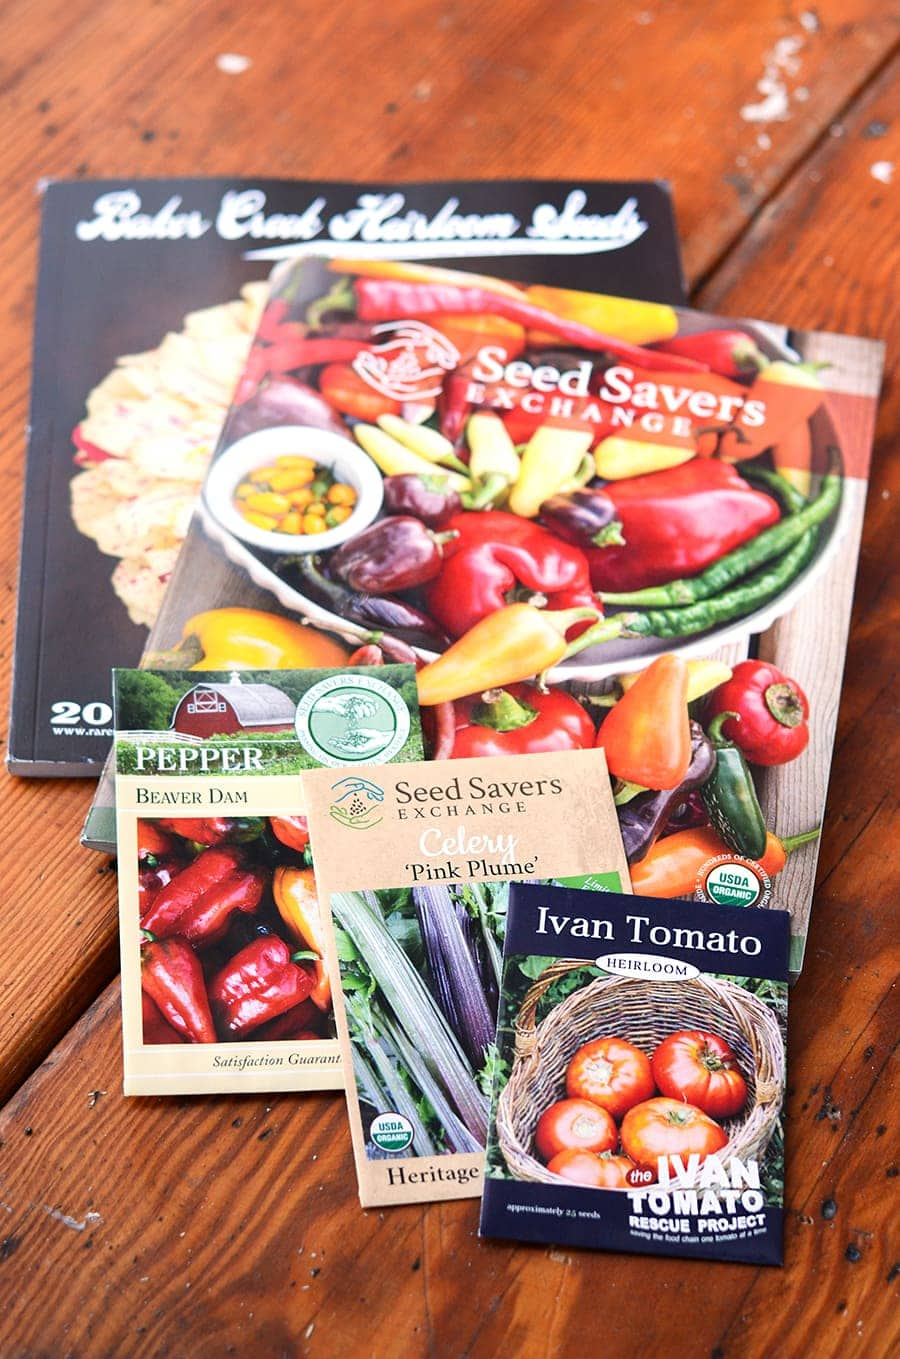 Catalogs and Seeds Web - Beat the winter blues with garden planning